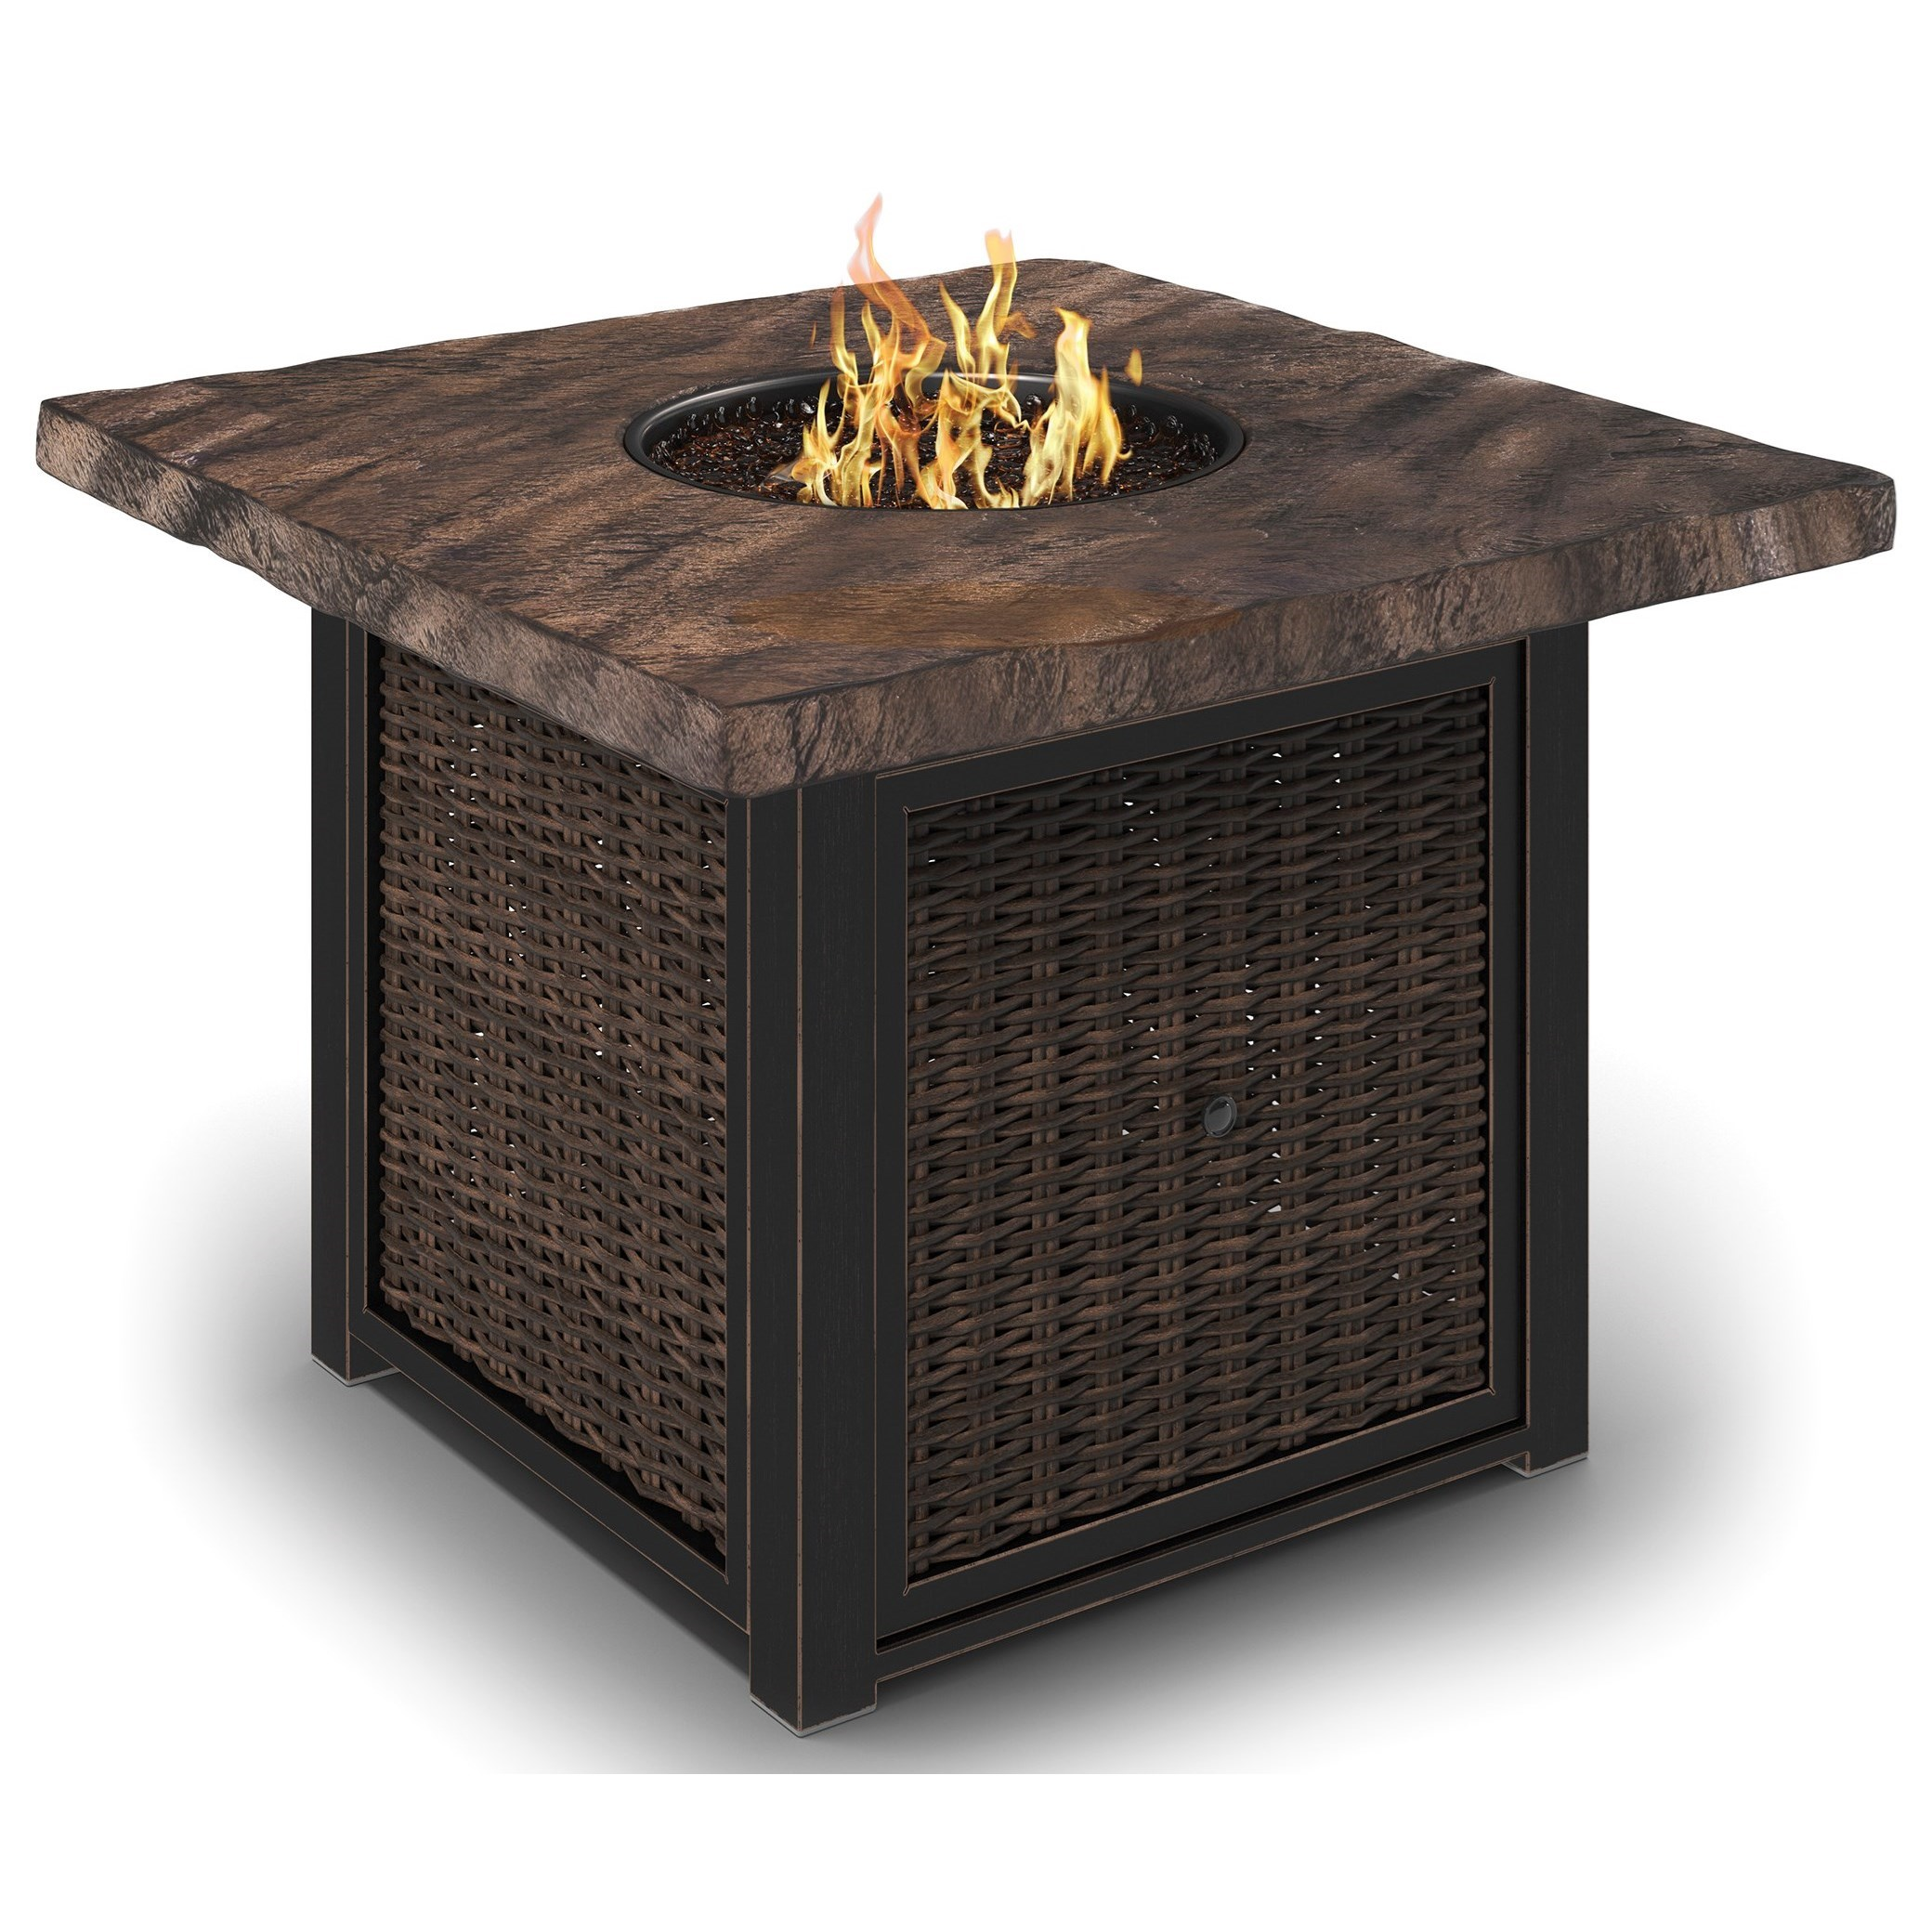 Signature Design by Ashley Alta Grande Square Fire Pit Table - Item Number: P782-772